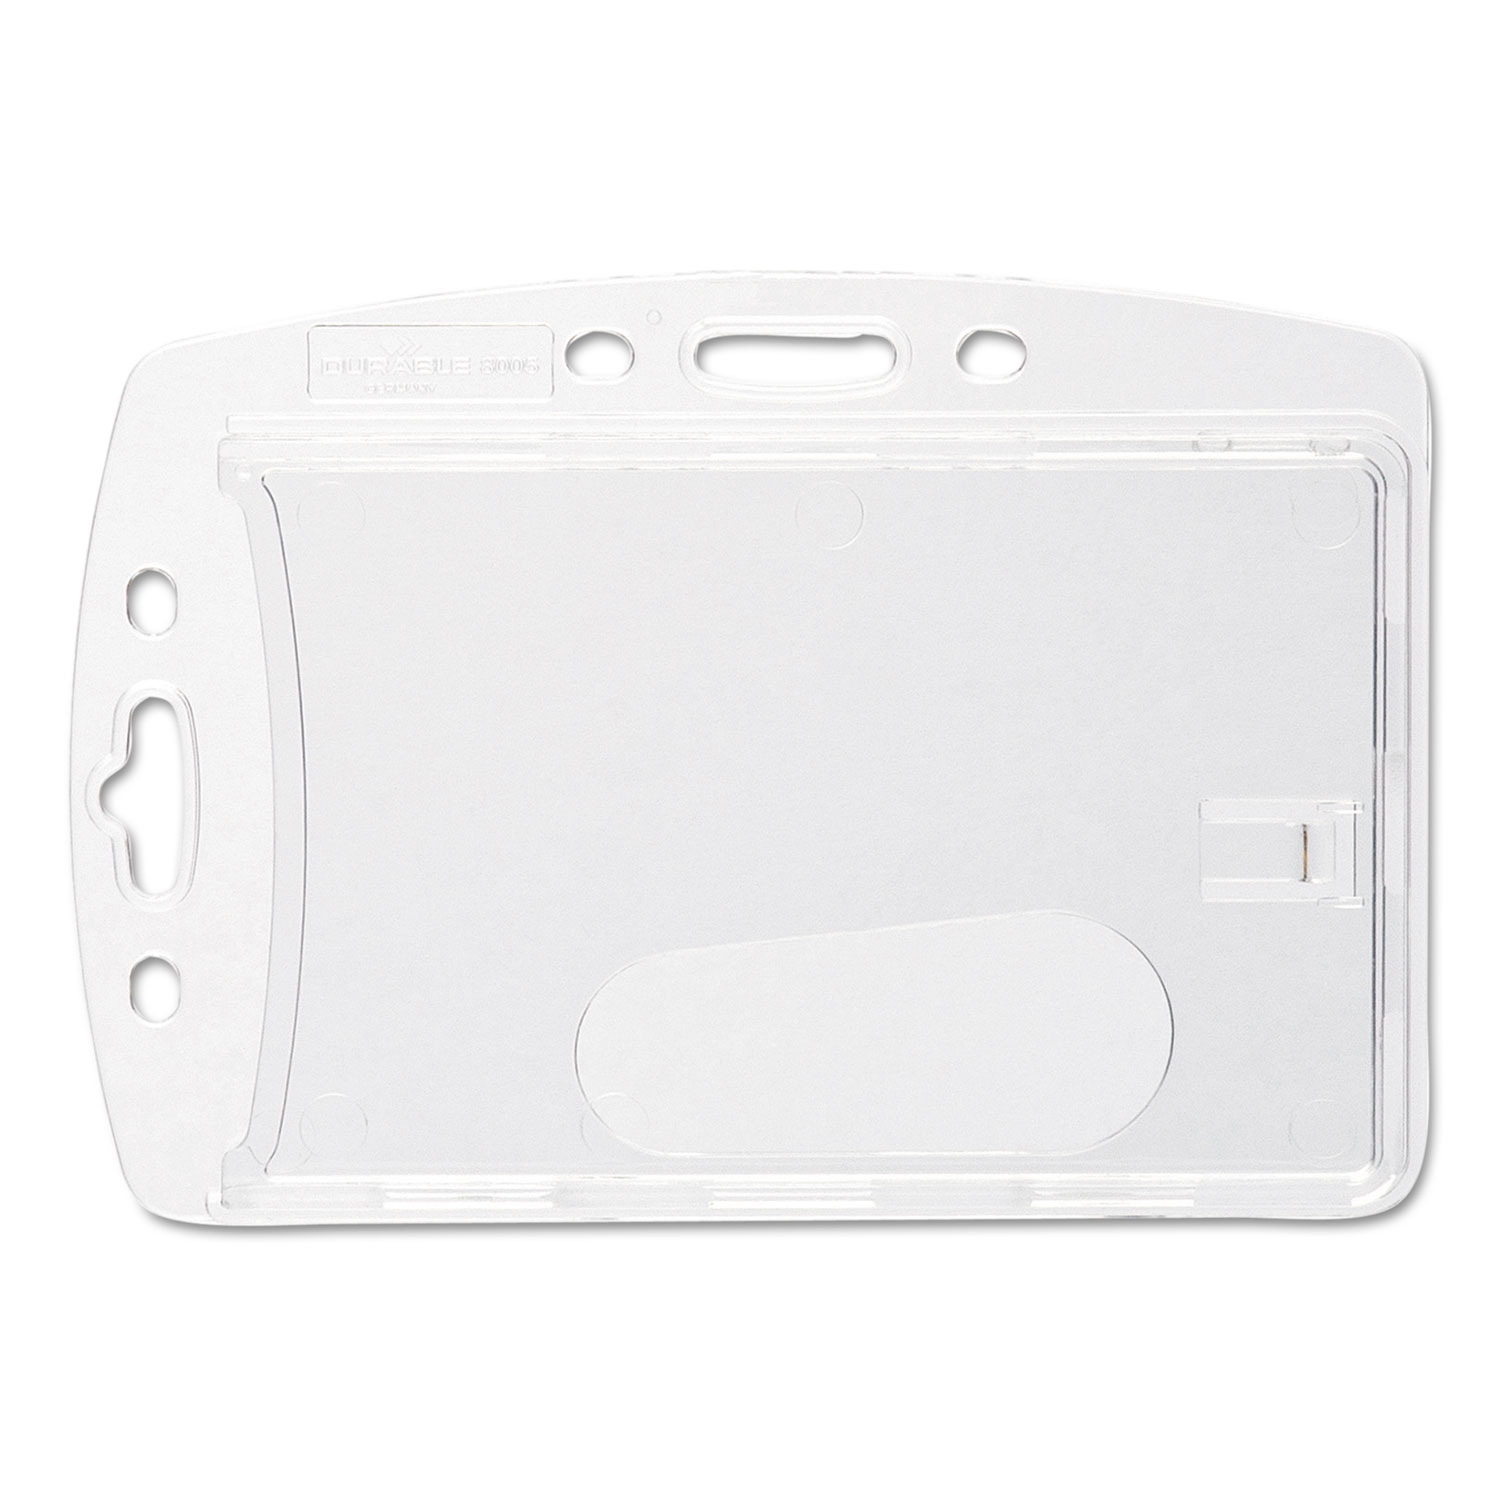 Replacement Card Holder, Vertical/Horizontal, Polystyrene, 10/Pack DBL890519